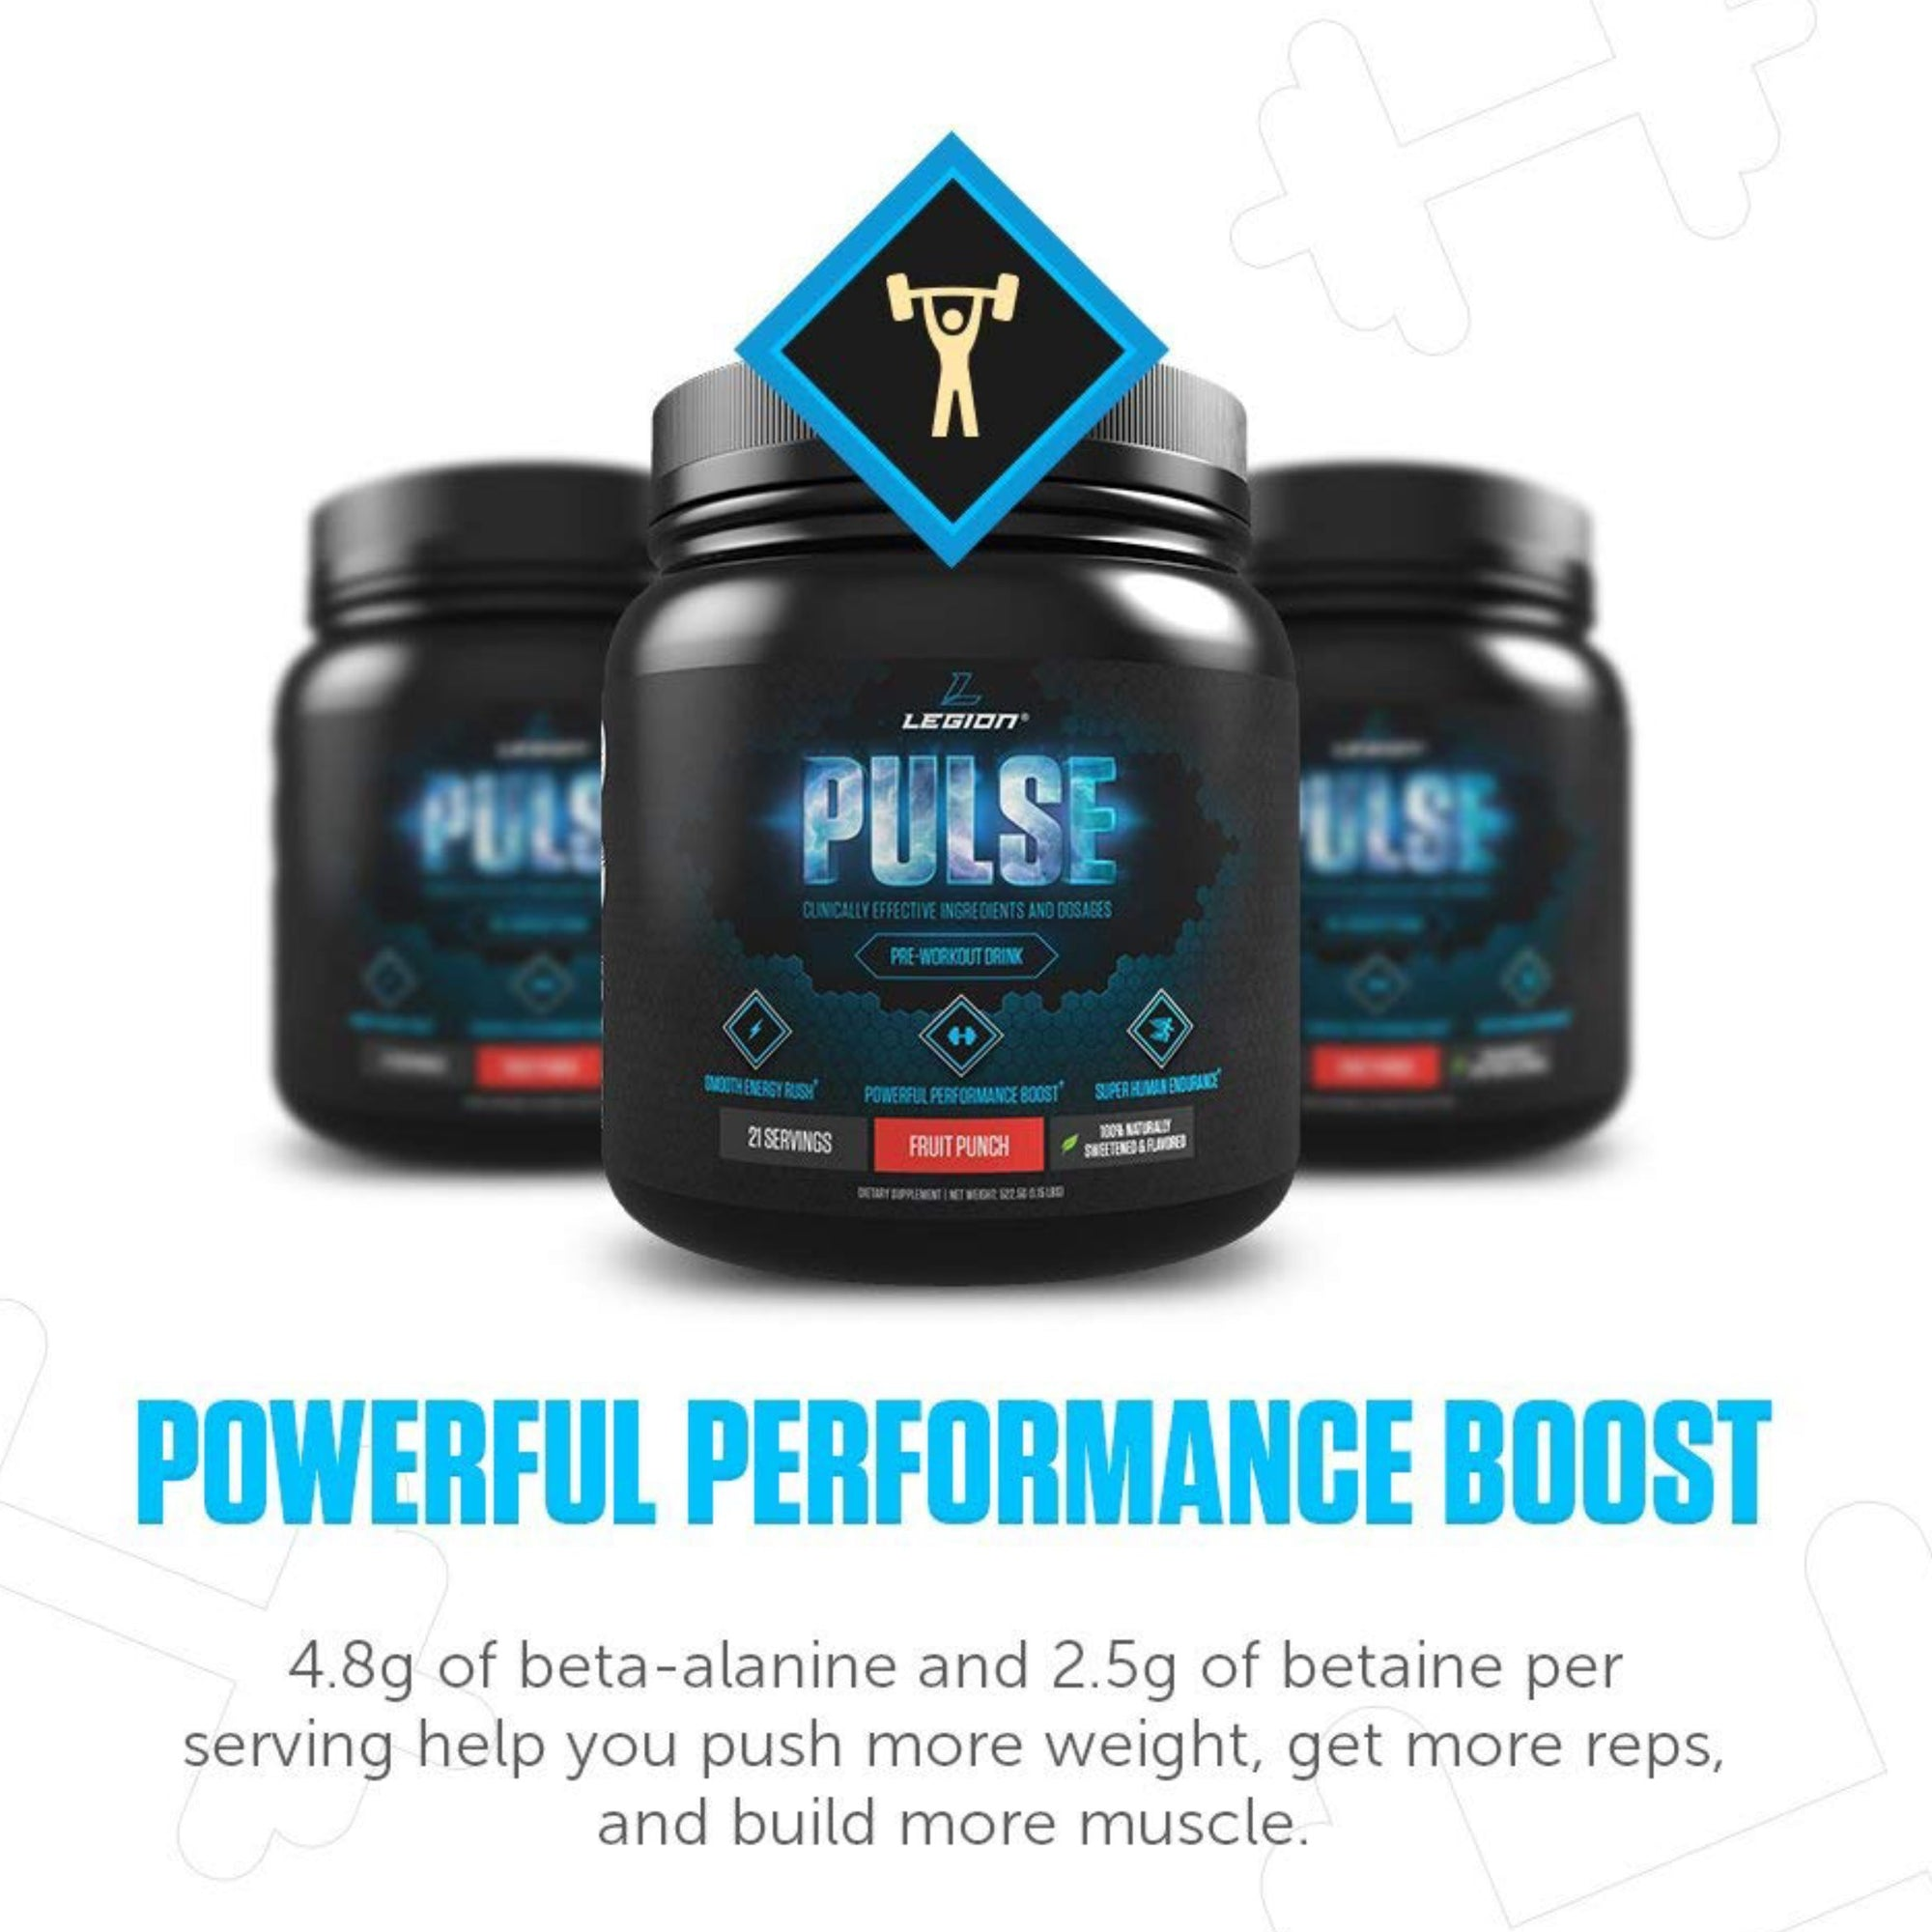 LEGION'S PULSE PRE-WORKOUT, Legion Athletics, Built4TheHunt, Built For The Hunt